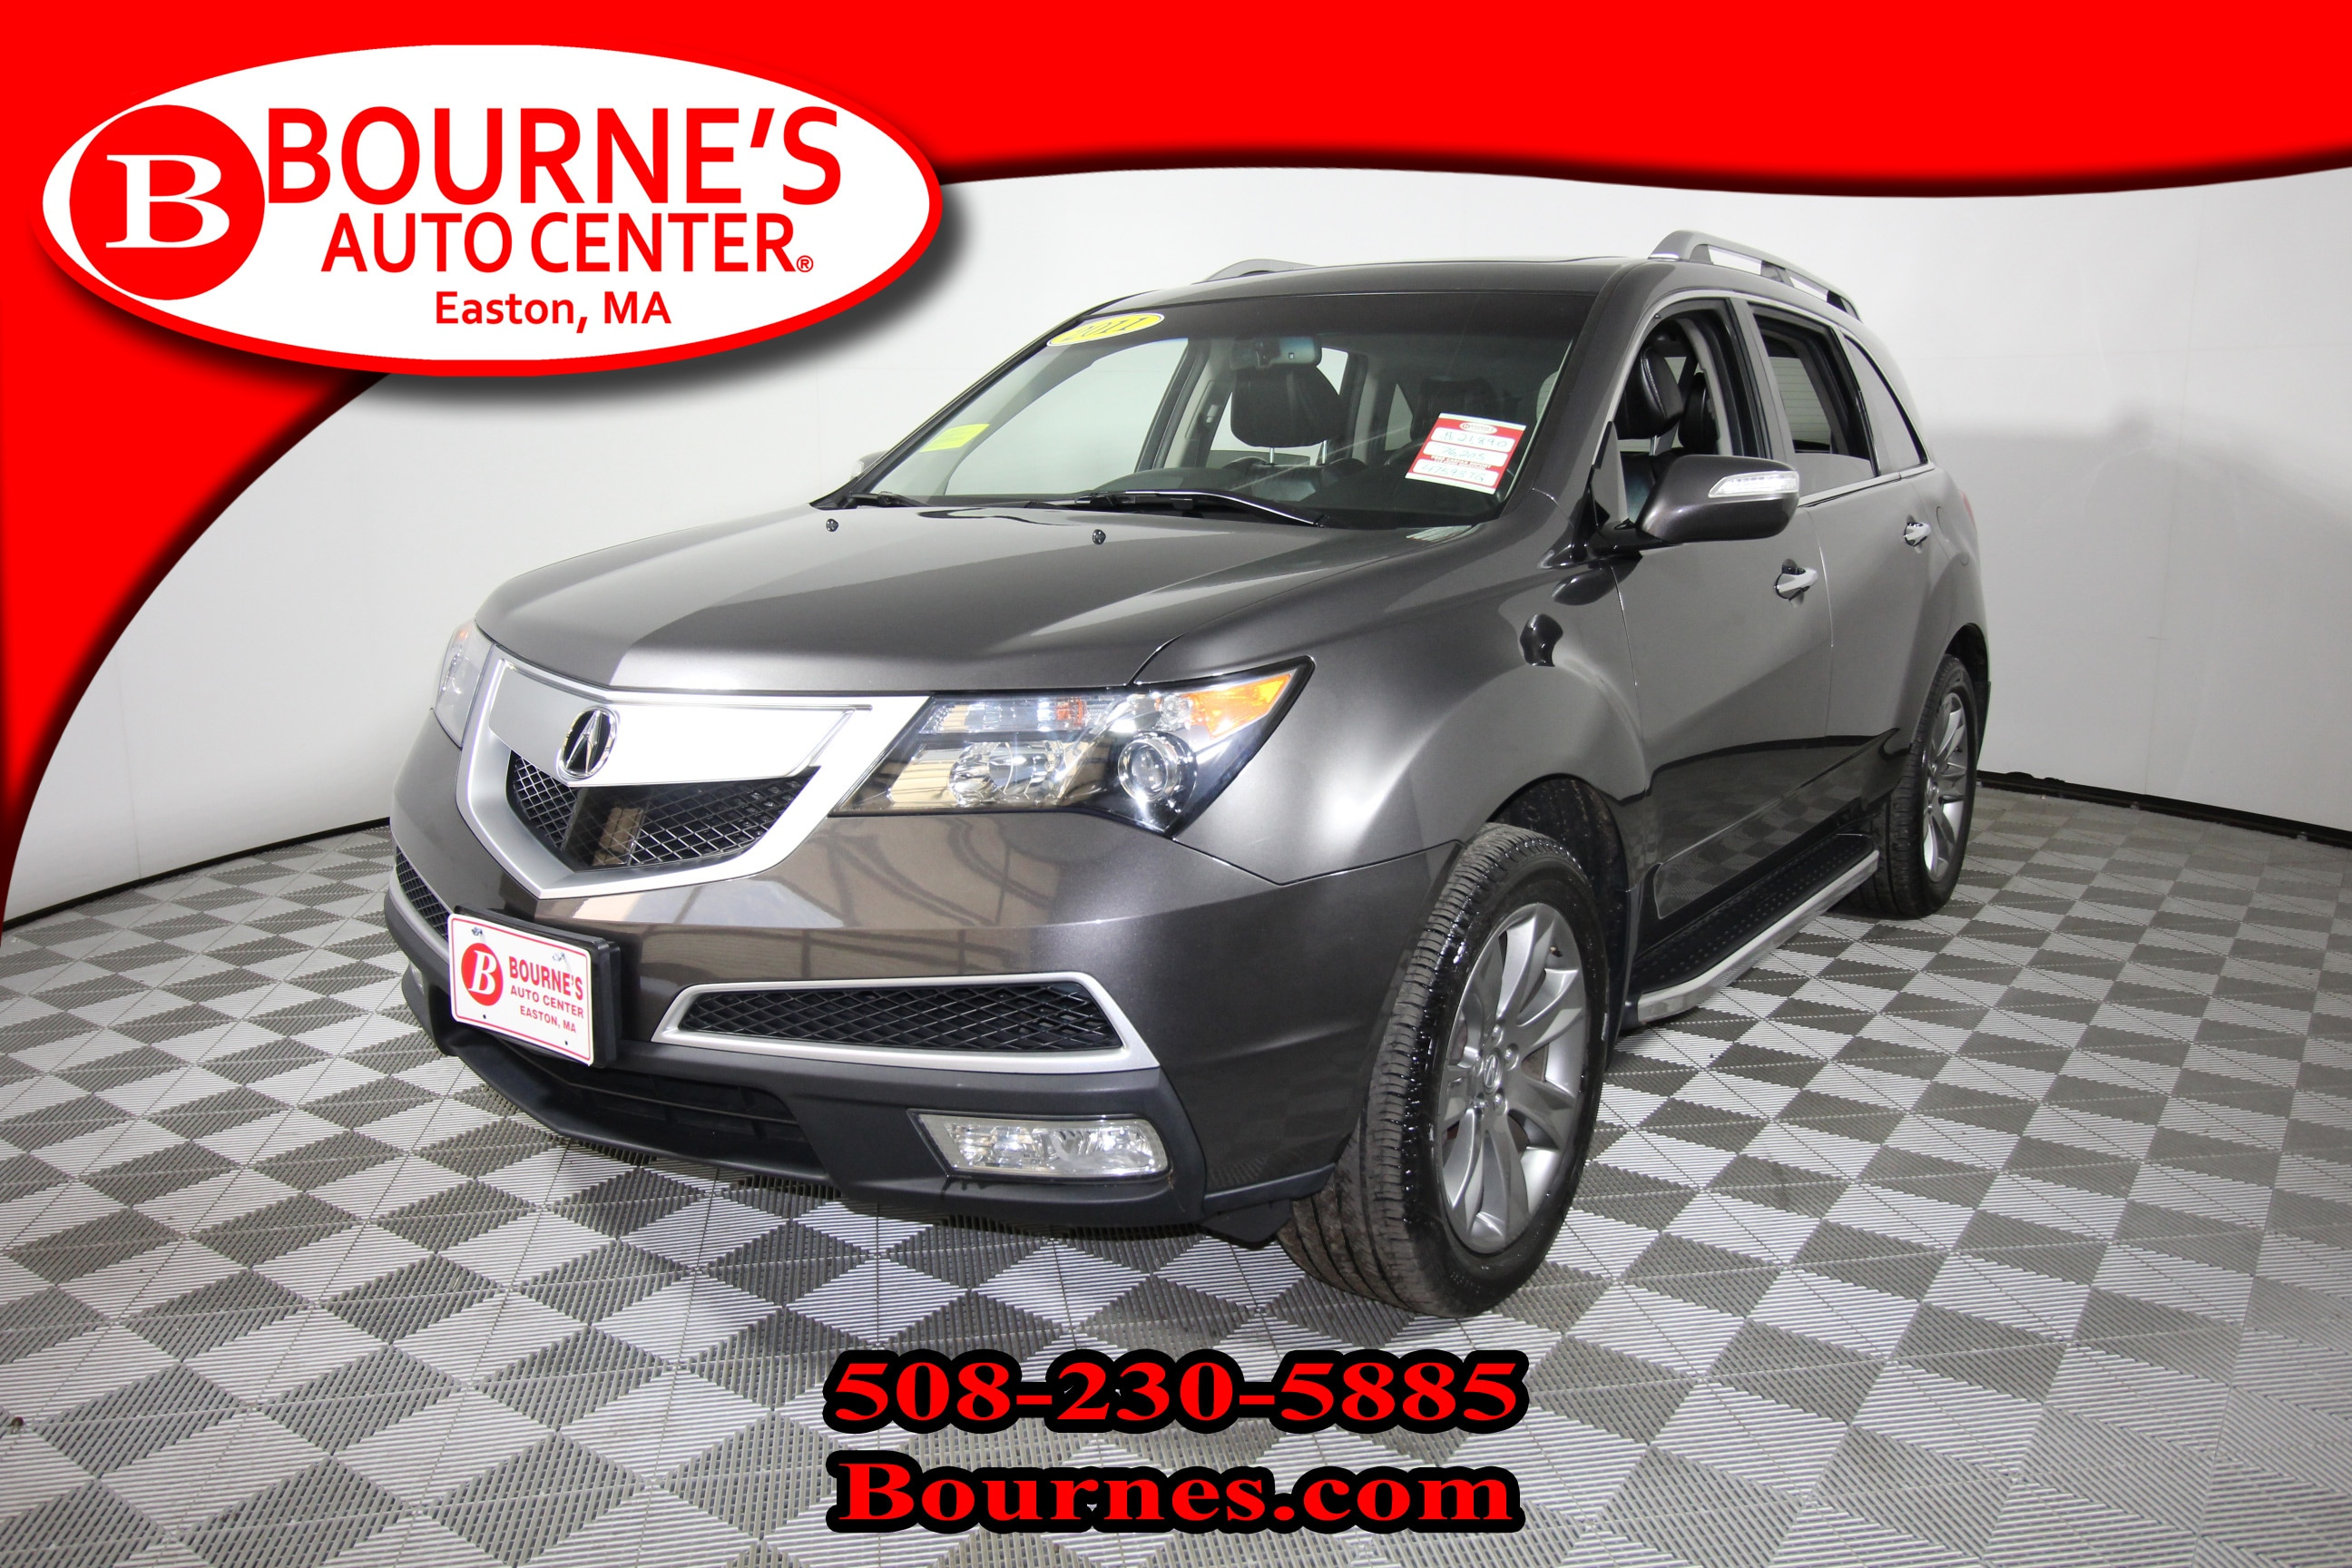 2011 Acura MDX Advance Package w/ Navigation,Leather,Sunroof,Heat SUV